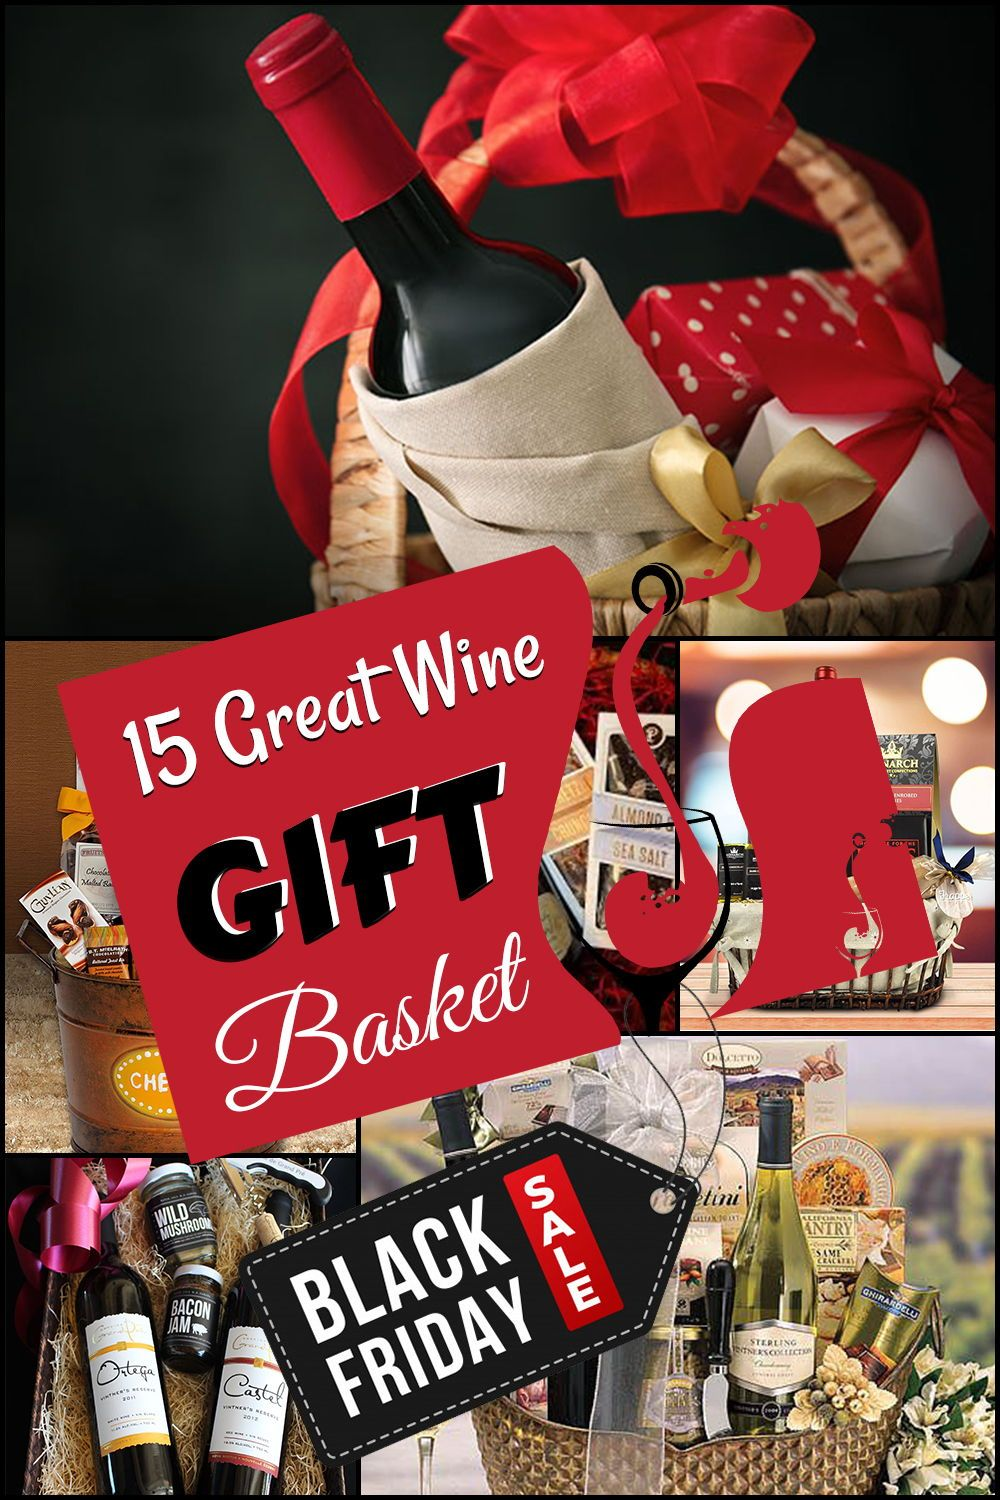 15 Great Wine Gift Basket Ideas In 2019 Grills Forever Wine Gift Baskets Wine Gifts Chocolate Gifts Basket